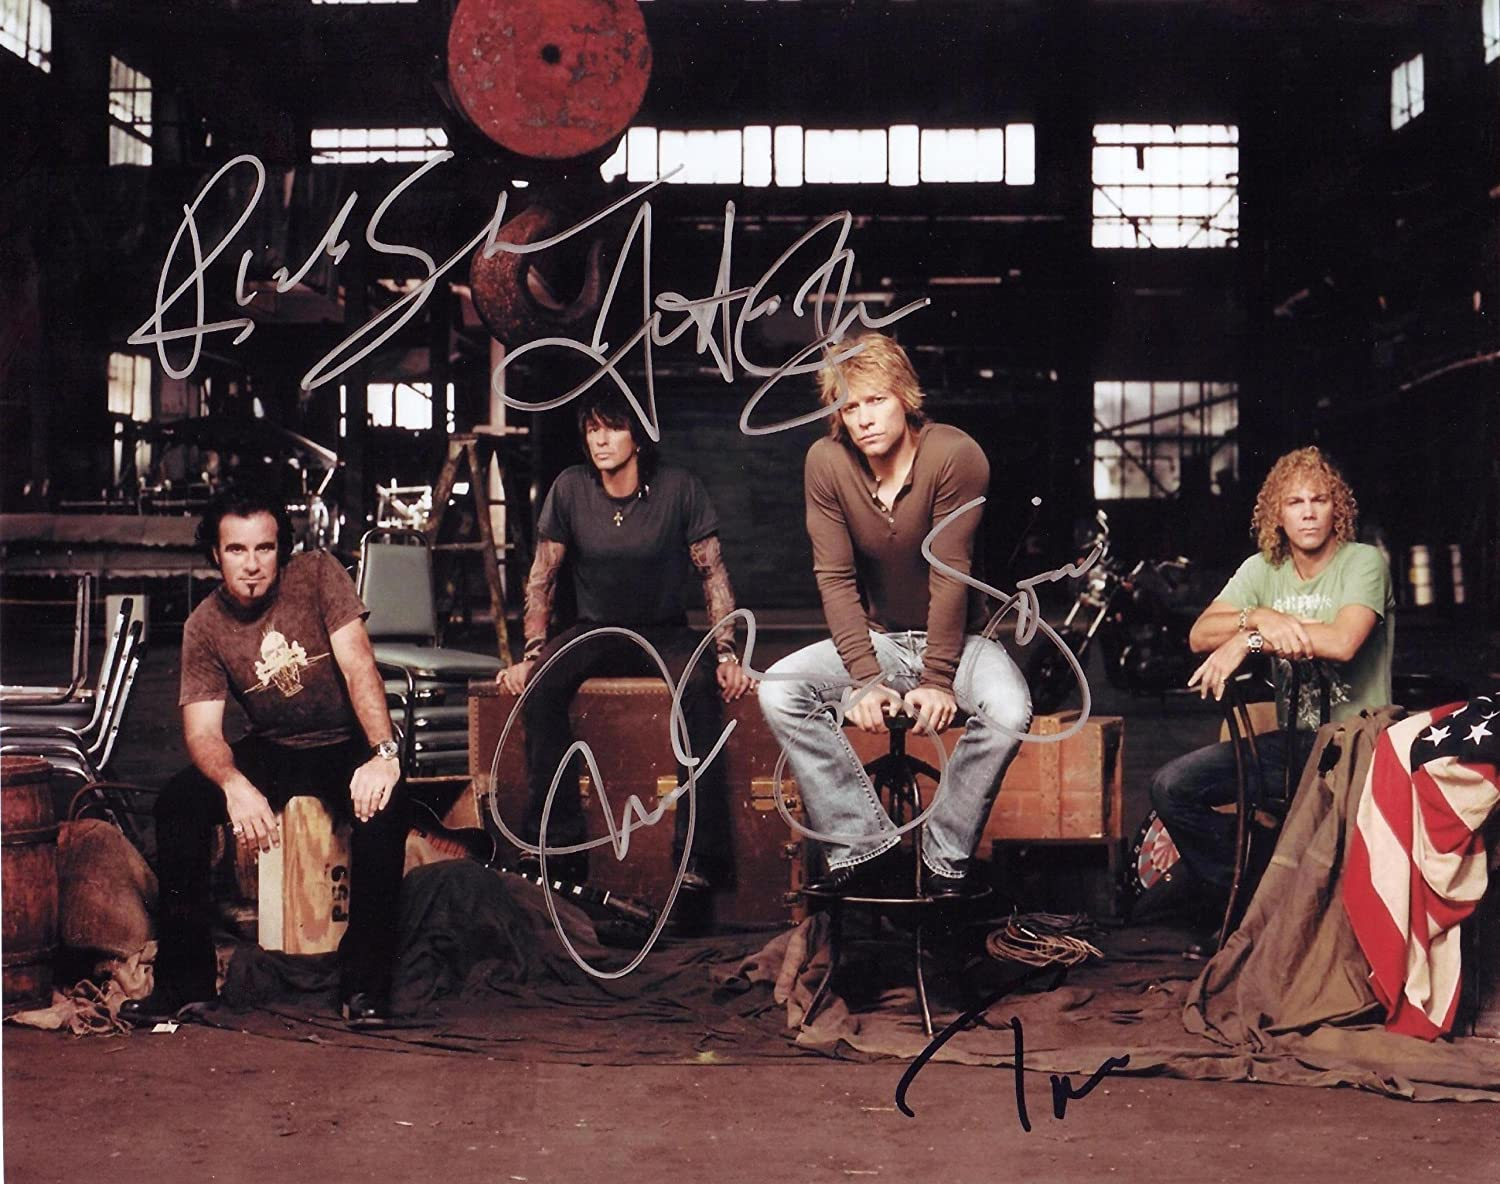 Bon Jovi Autographed Signed 8 X 10 RP Photo - Mint Condition got7 got 7 mark autographed signed photo flight log arrival 6 inches new korean freeshipping 03 2017